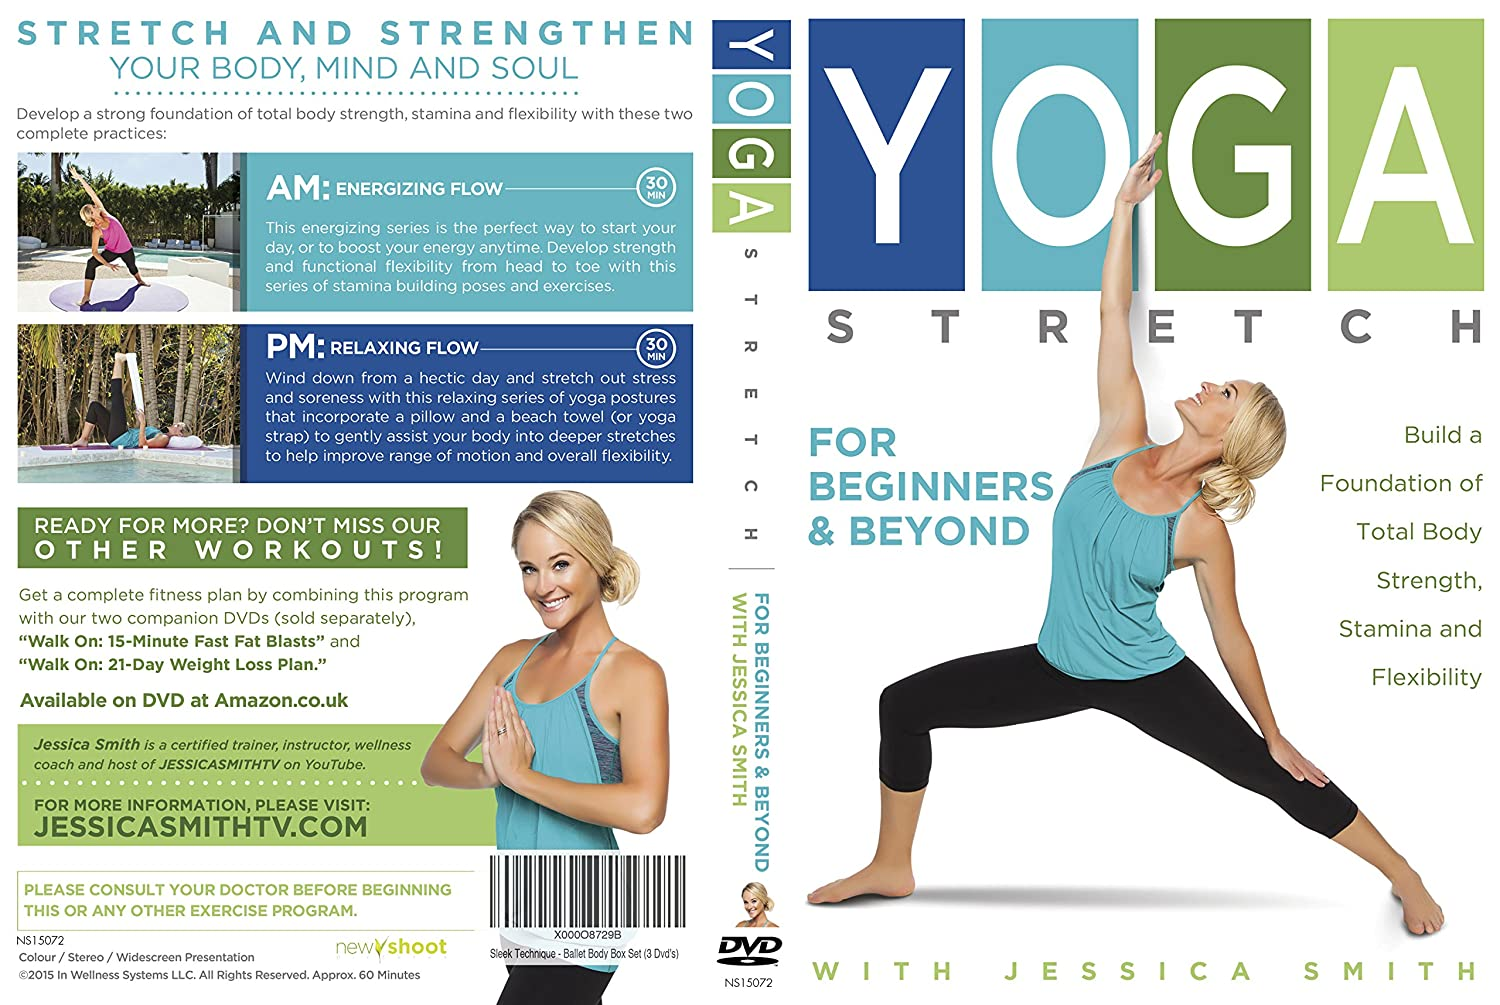 Yoga Stretch for Beginners and Beyond with Jessica Smith ...